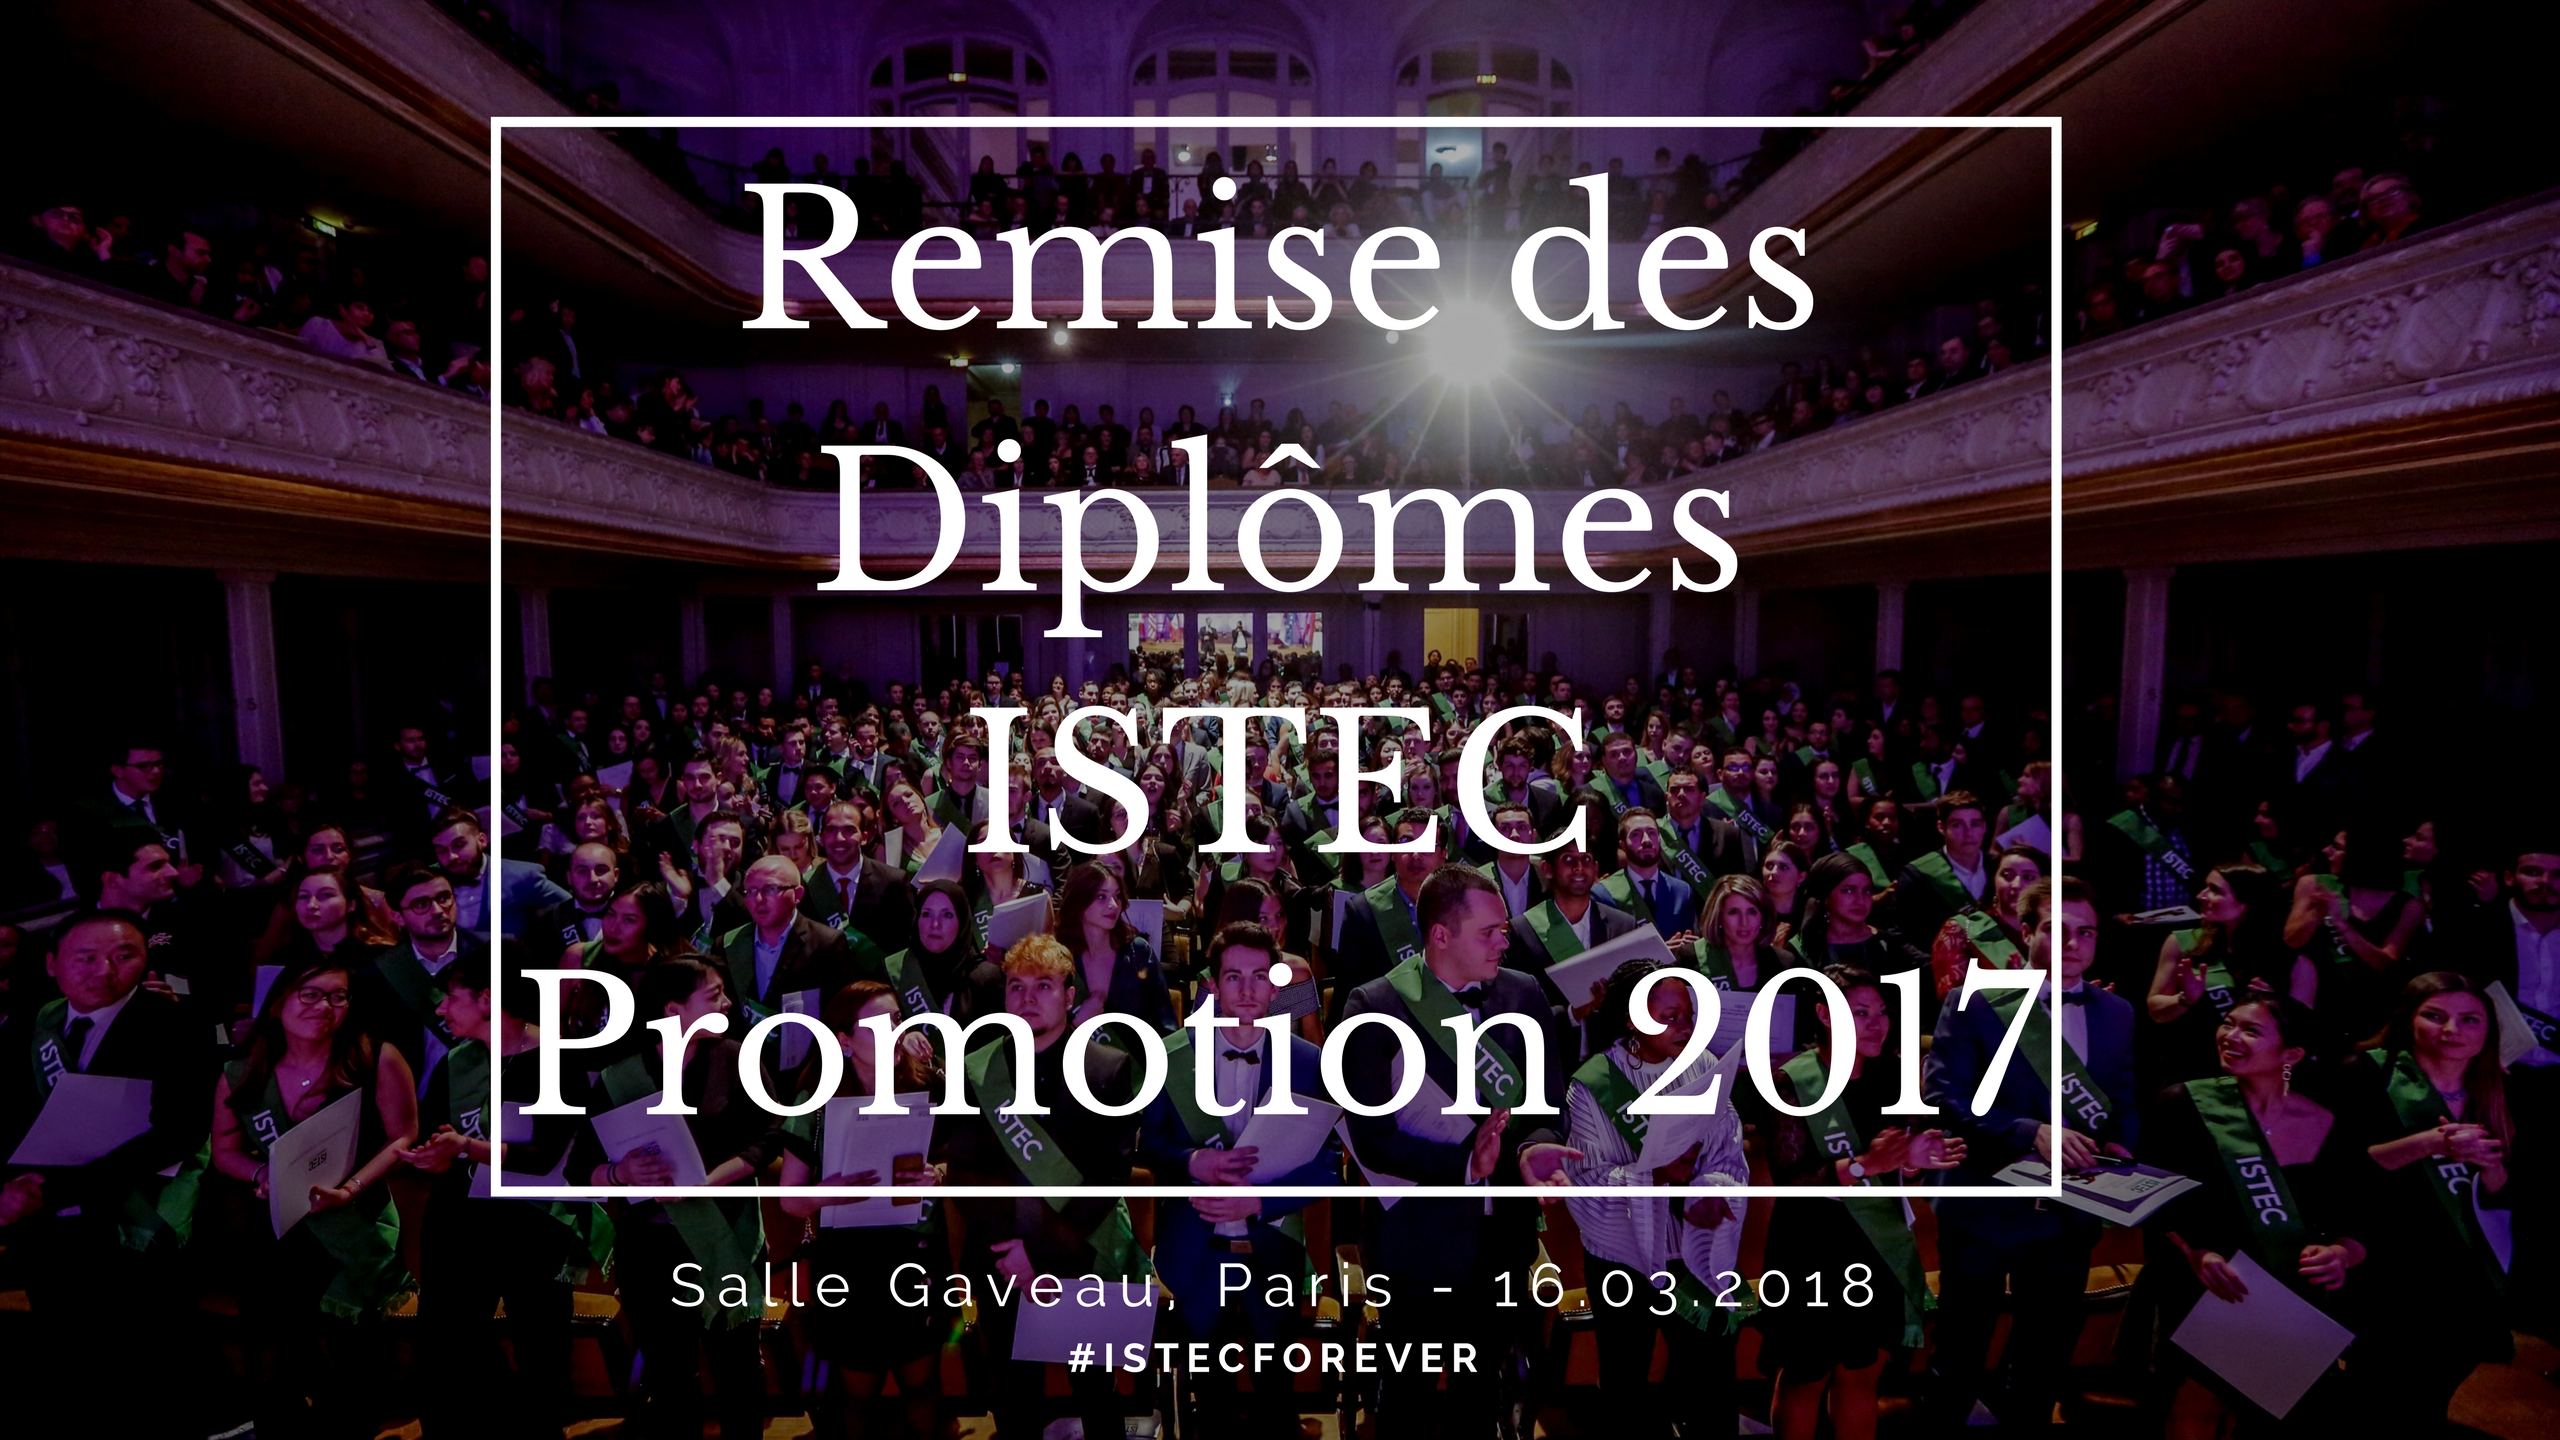 RDD ISTEC Promotion 2017